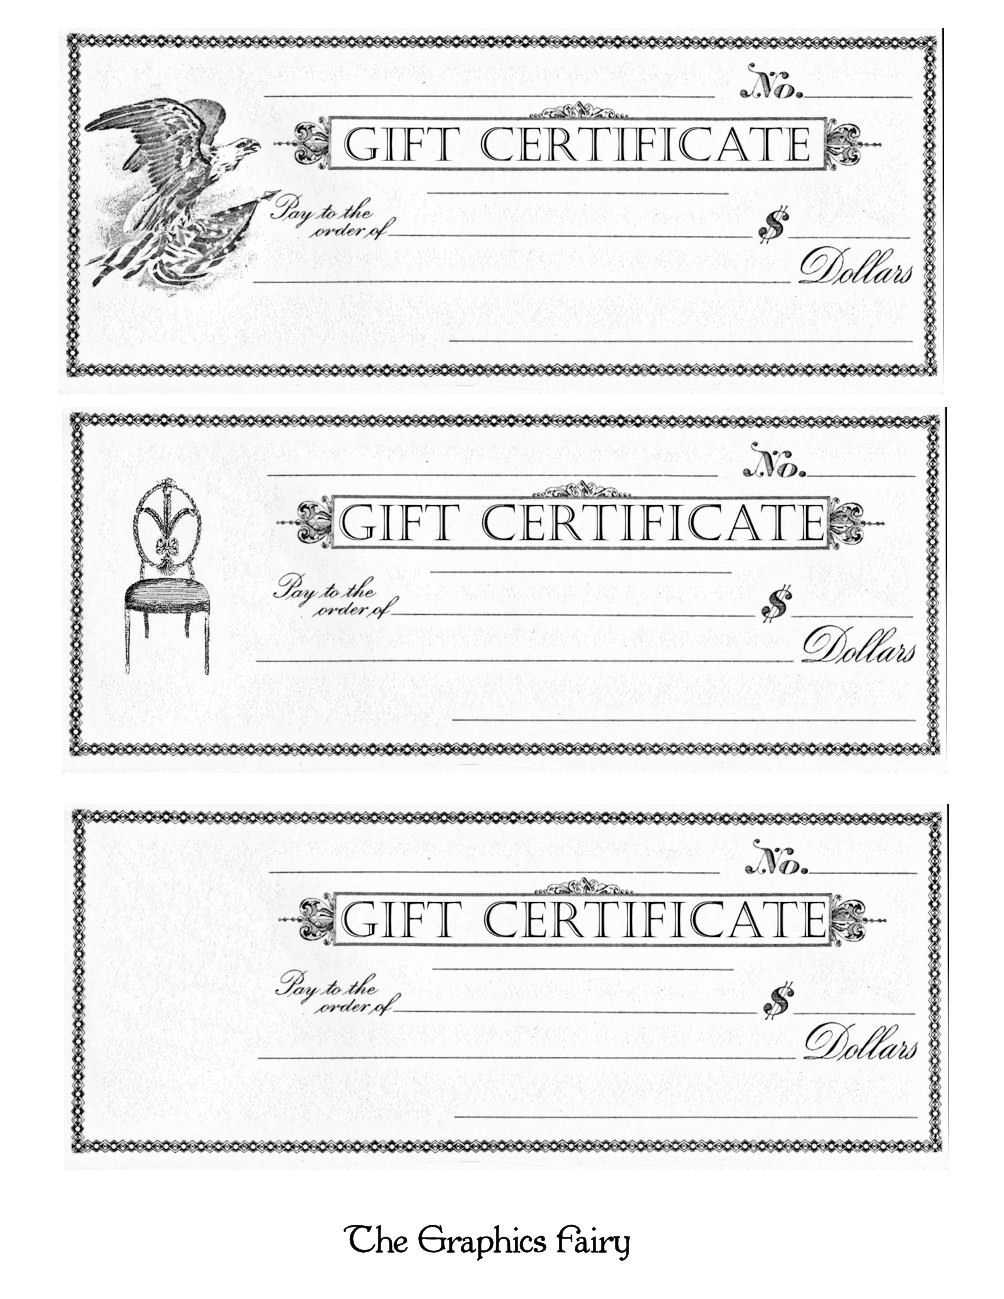 Free Printable - Gift Certificates - The Graphics Fairy intended for Black And White Gift Certificate Template Free